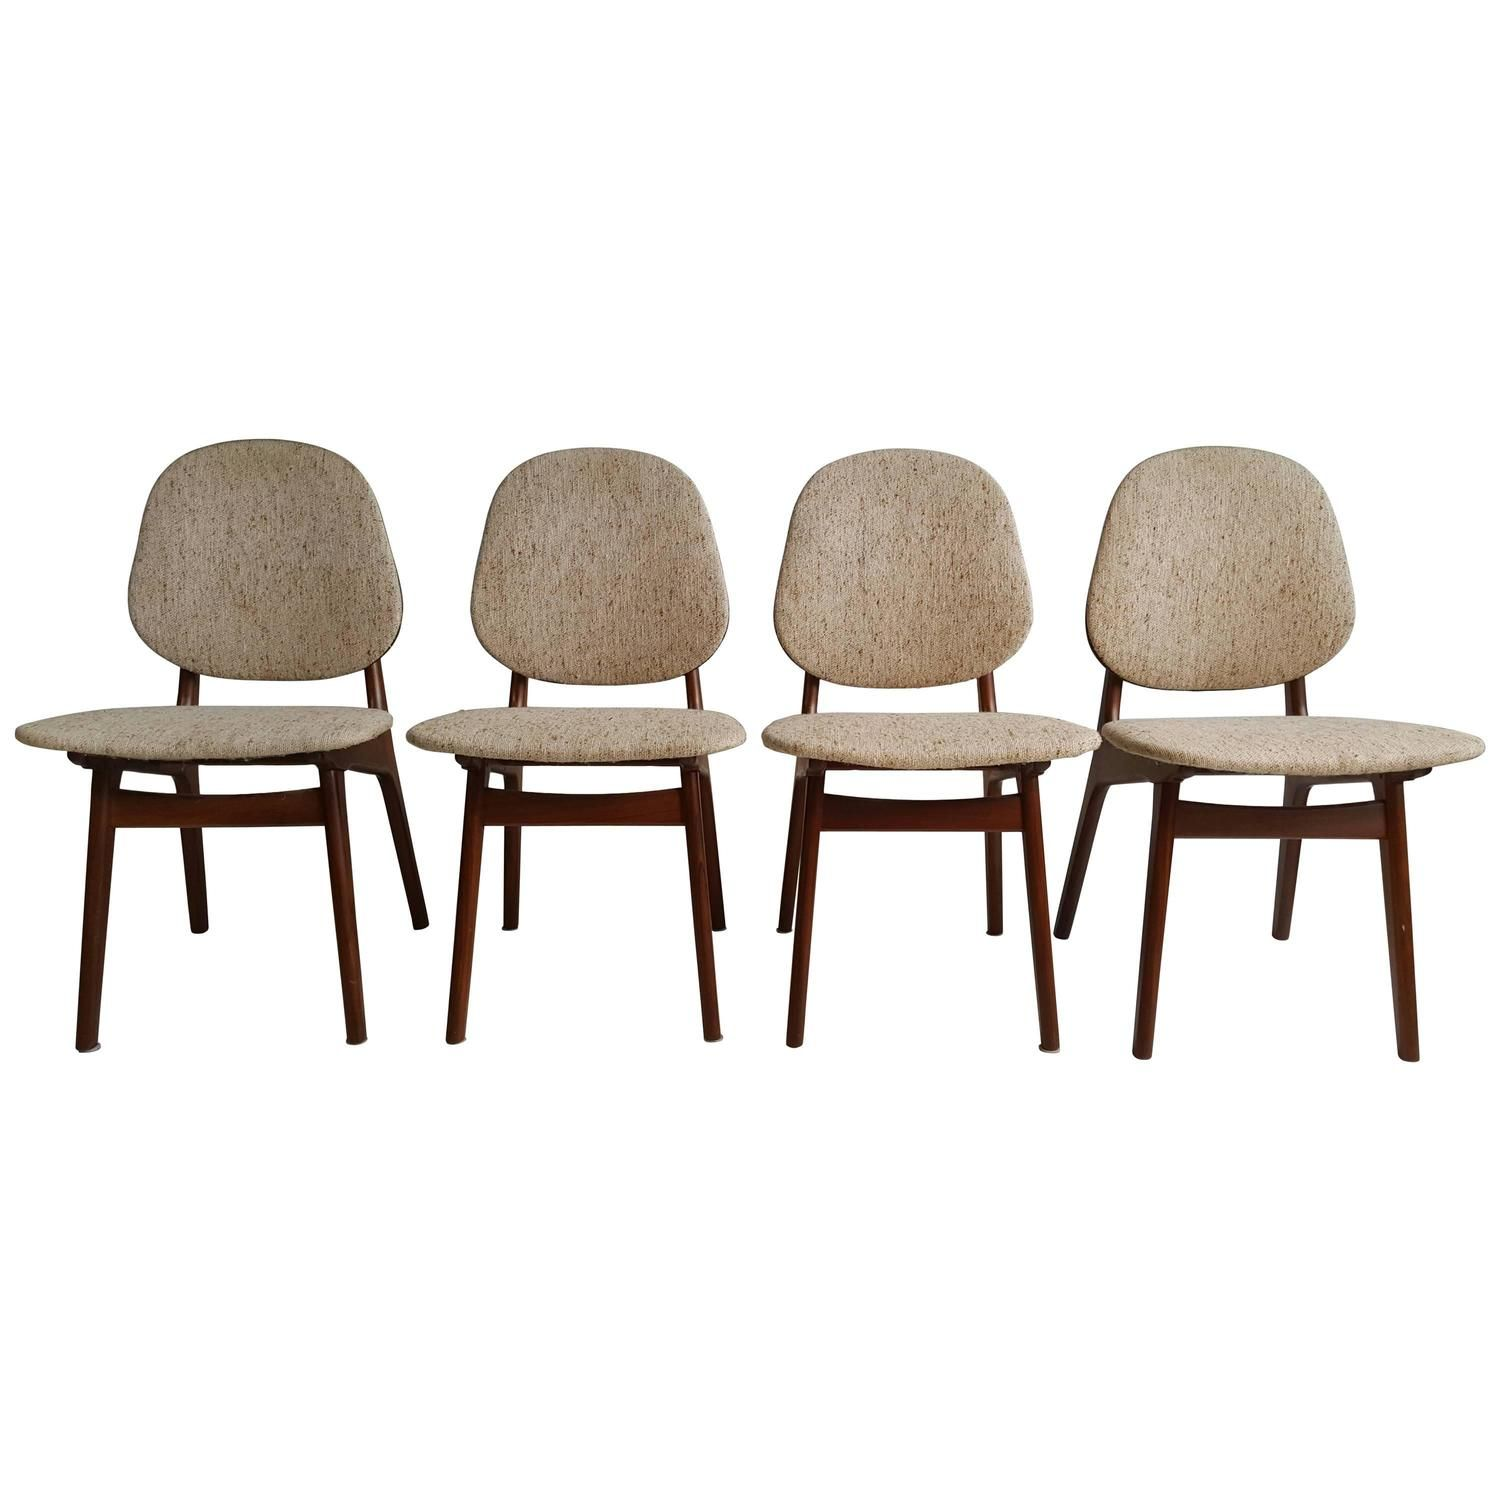 Elegant Danish Modern Dining Chairs by Arne Hovmand Olsen